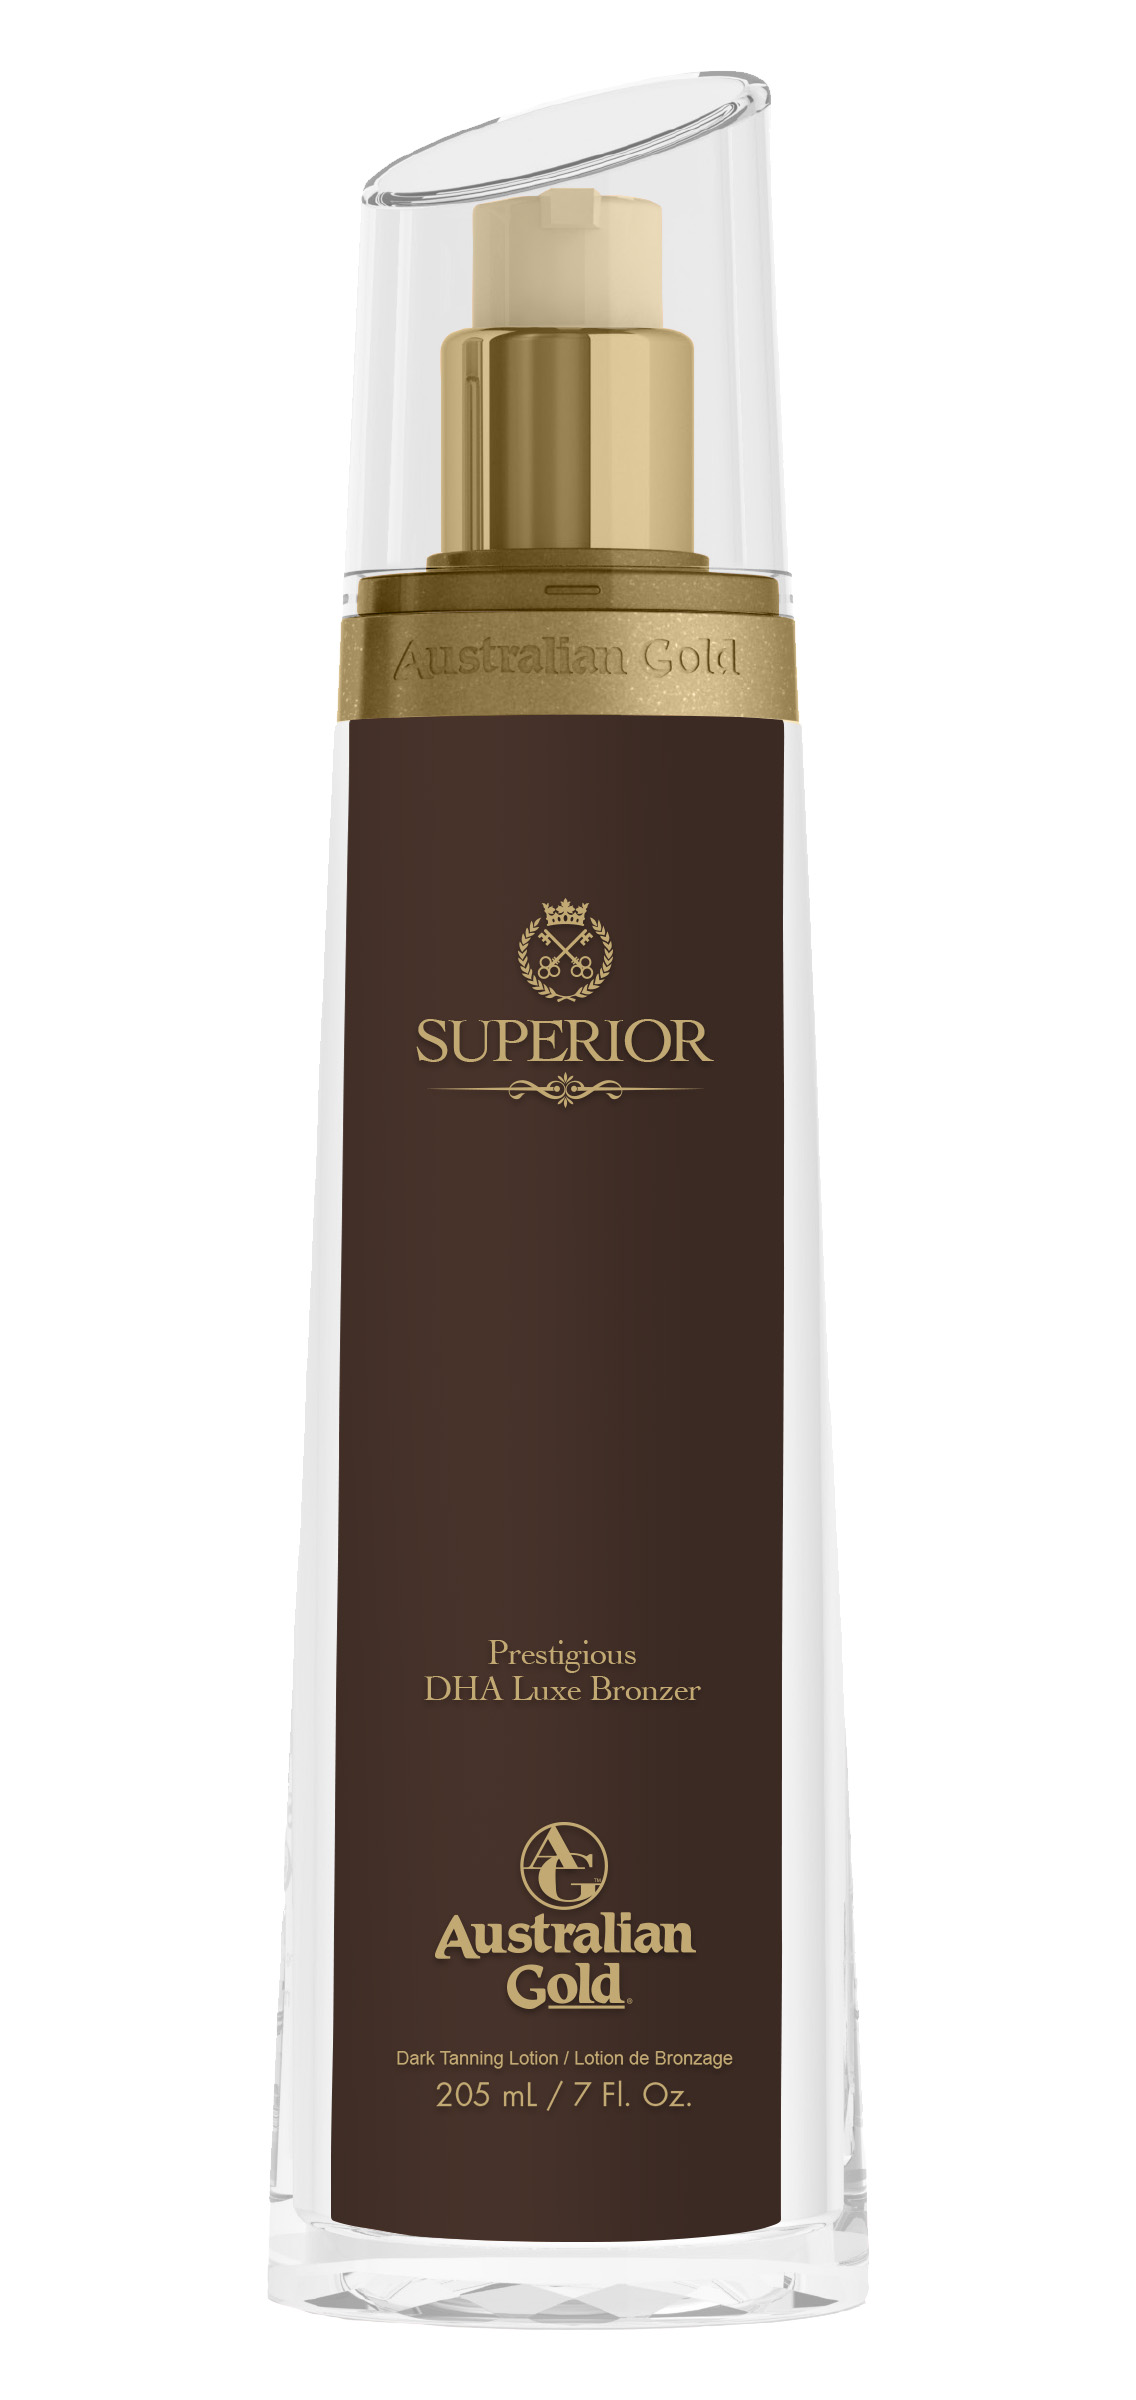 Superior™ DHA Bronzer with Liposomal Illuminating Complex